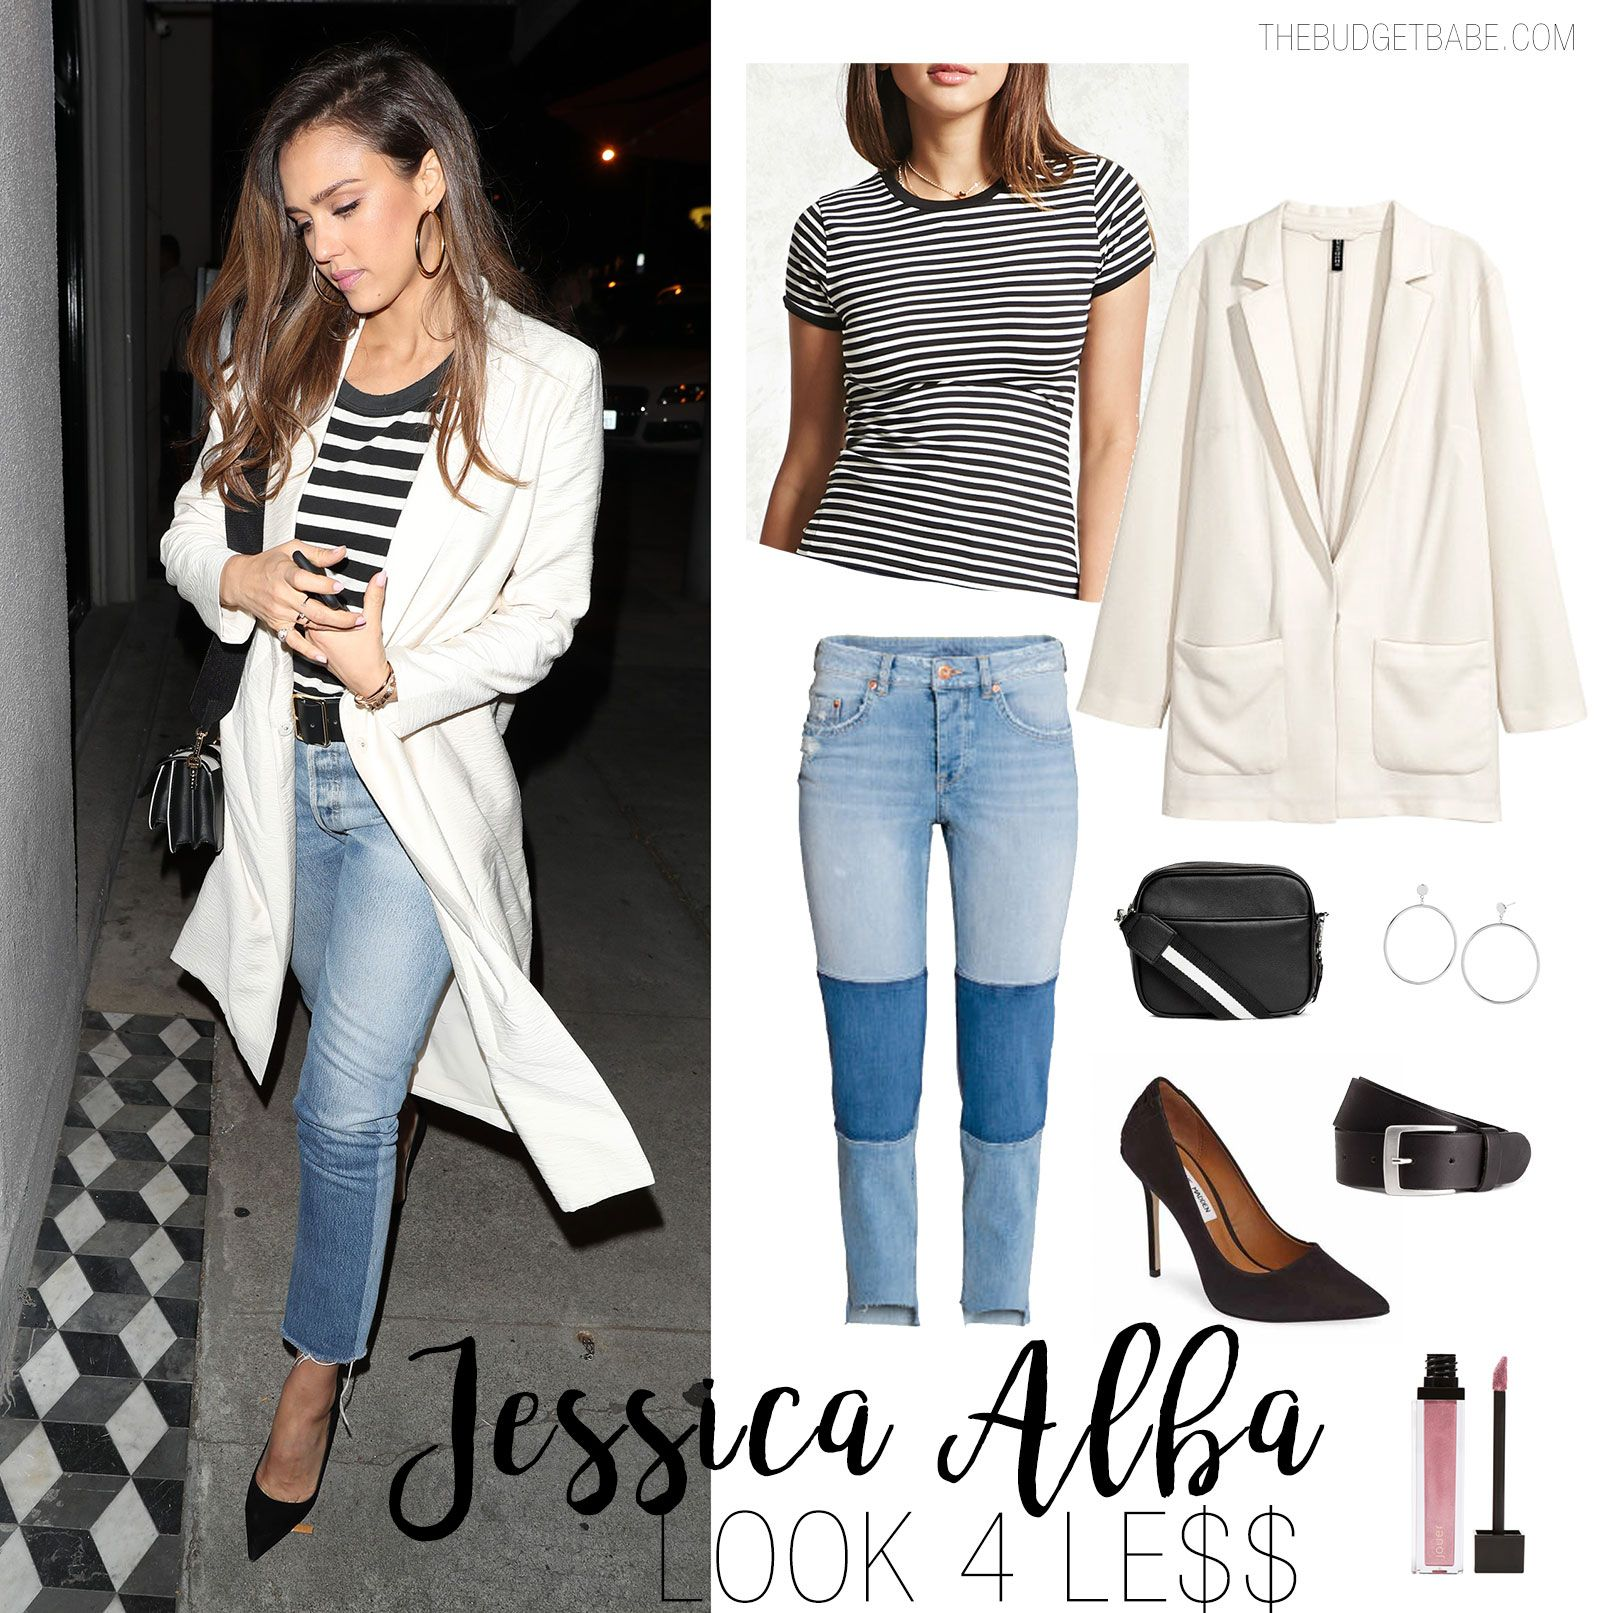 Get the less for look jessica alba exclusive photo